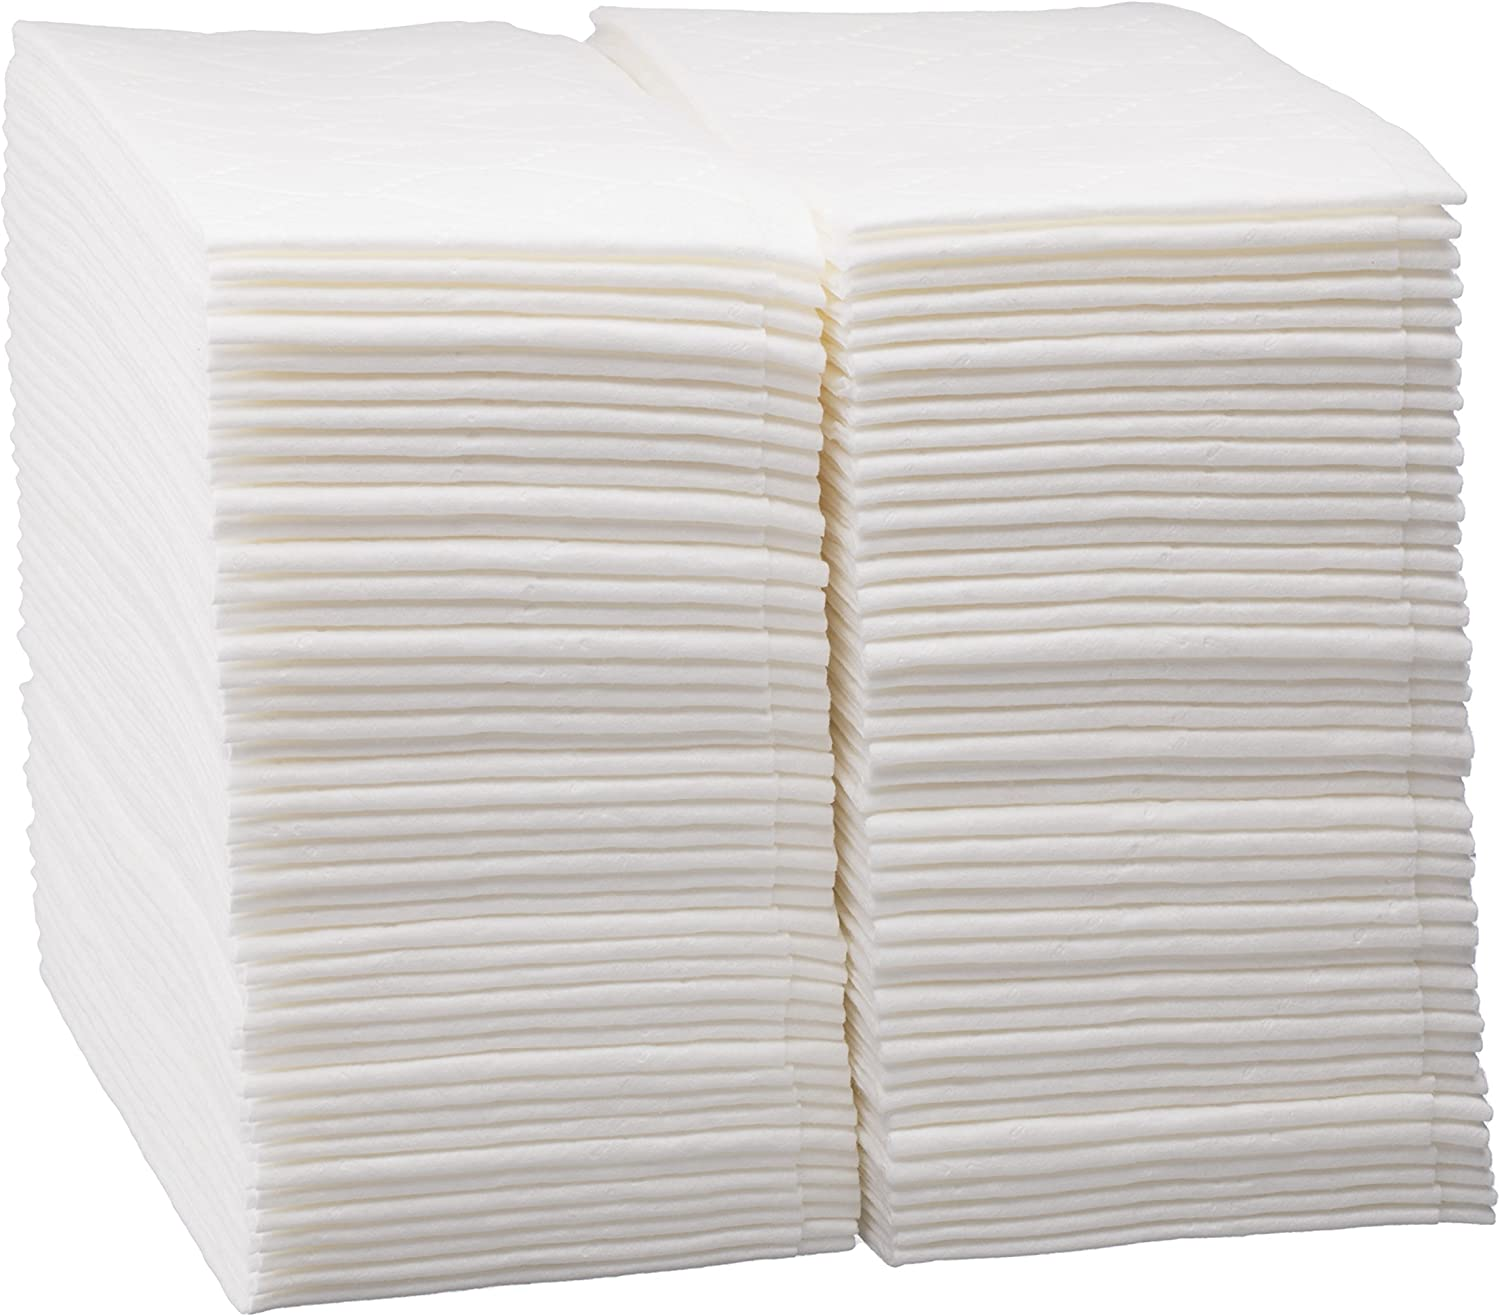 100 Count Luxury Linen Feel Max 43% OFF Disposable Beauty products Bulk Hand Guest Towels in